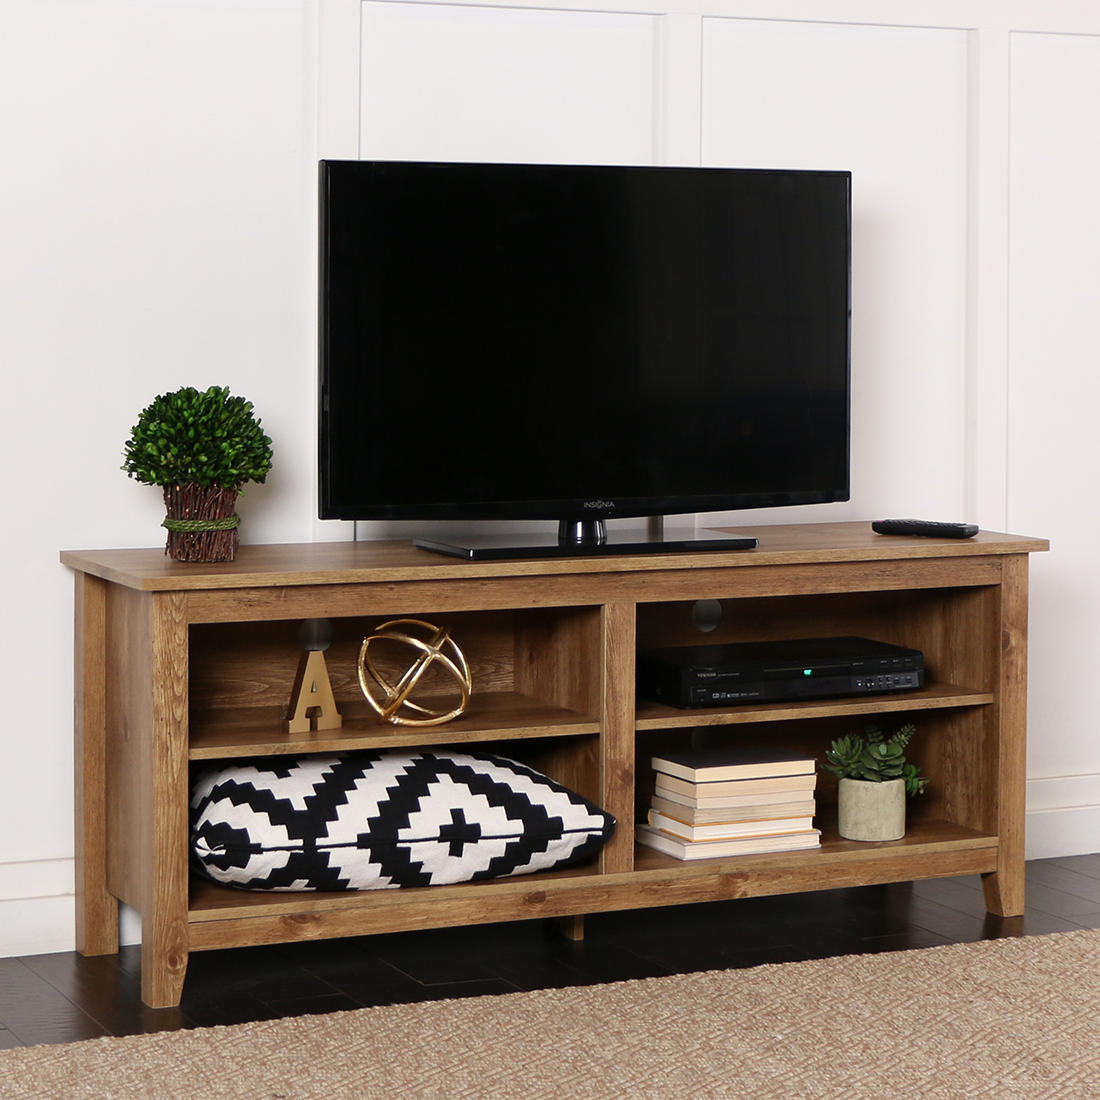 W Trends 58 Wood Tv Media Stand And Storage Console For Tvs Up To 60 Barnwood